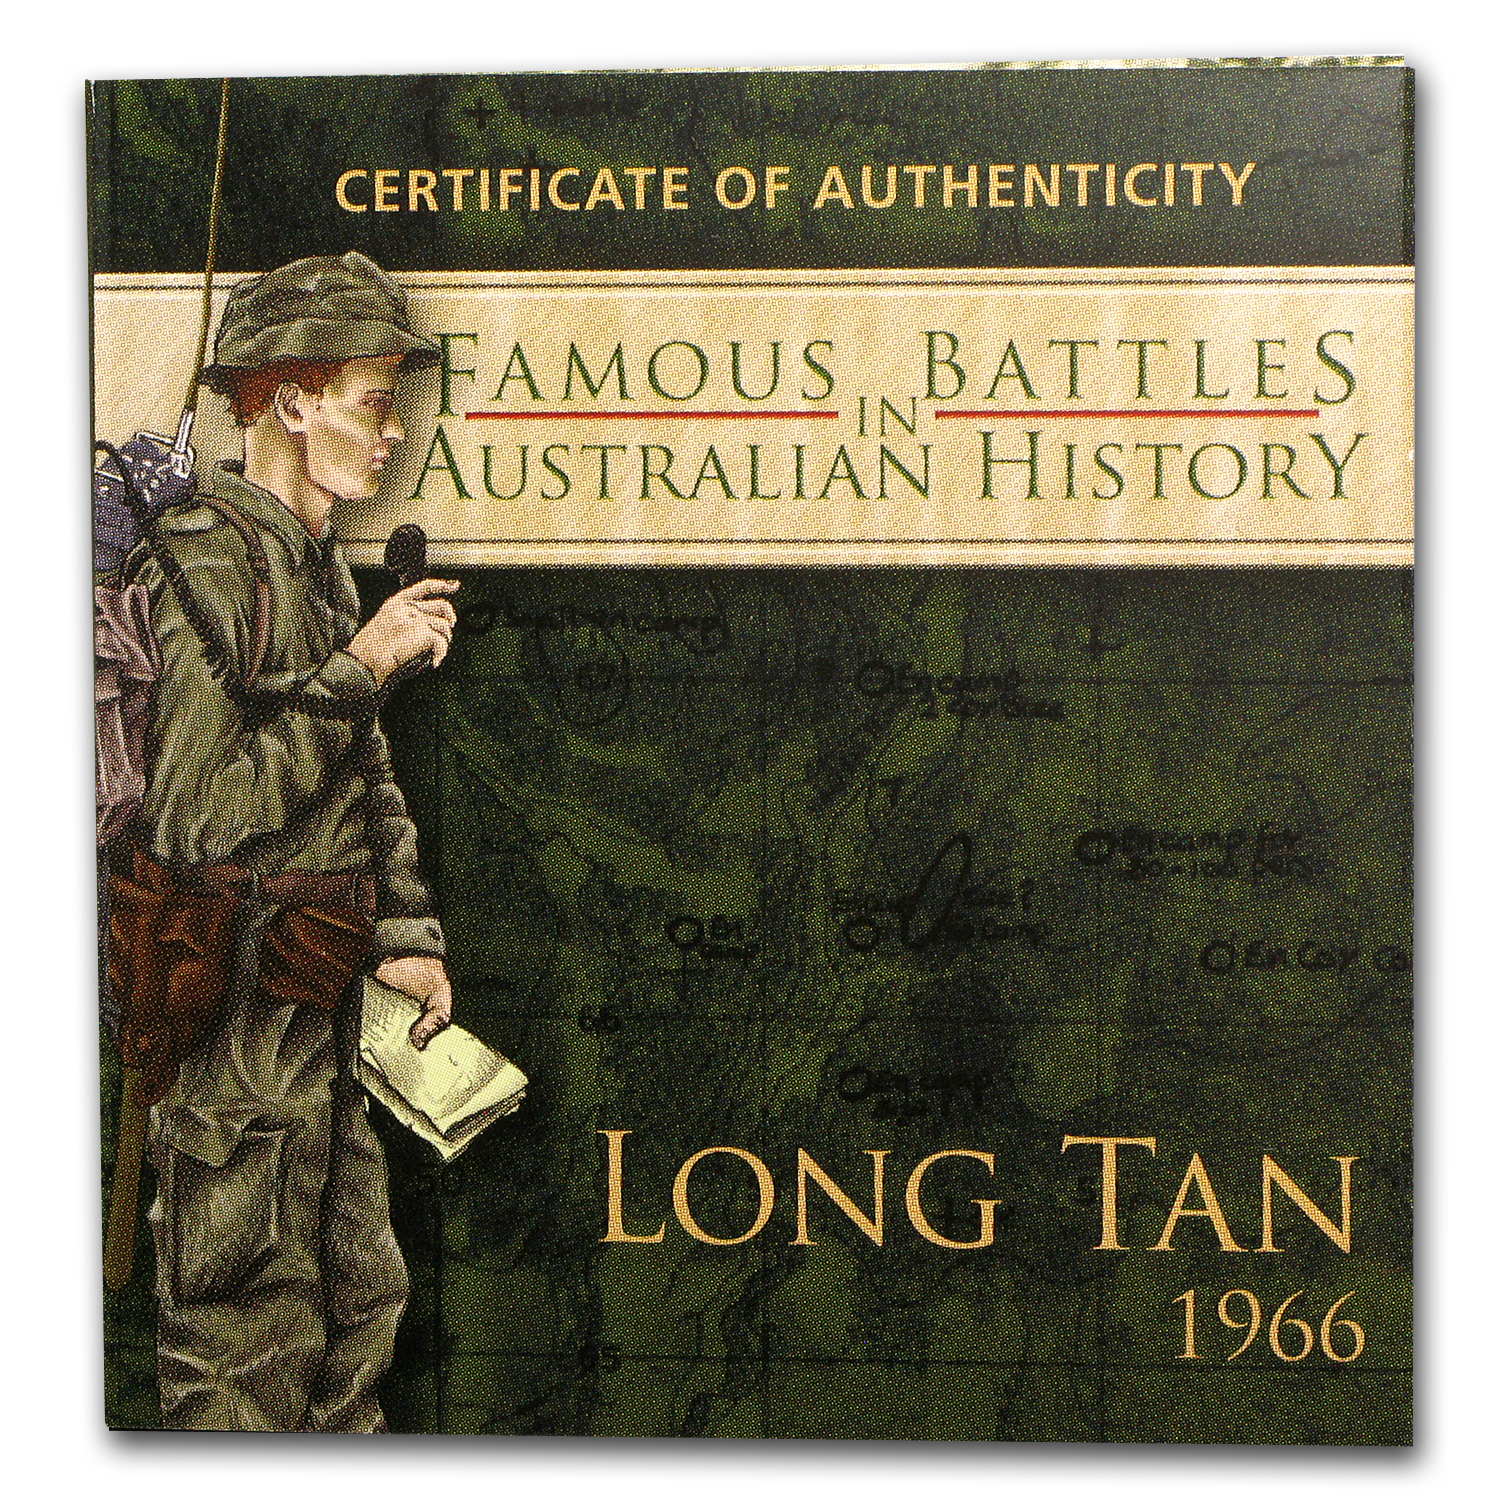 2012 1 oz Silver Australian Battle of Long Tan Proof